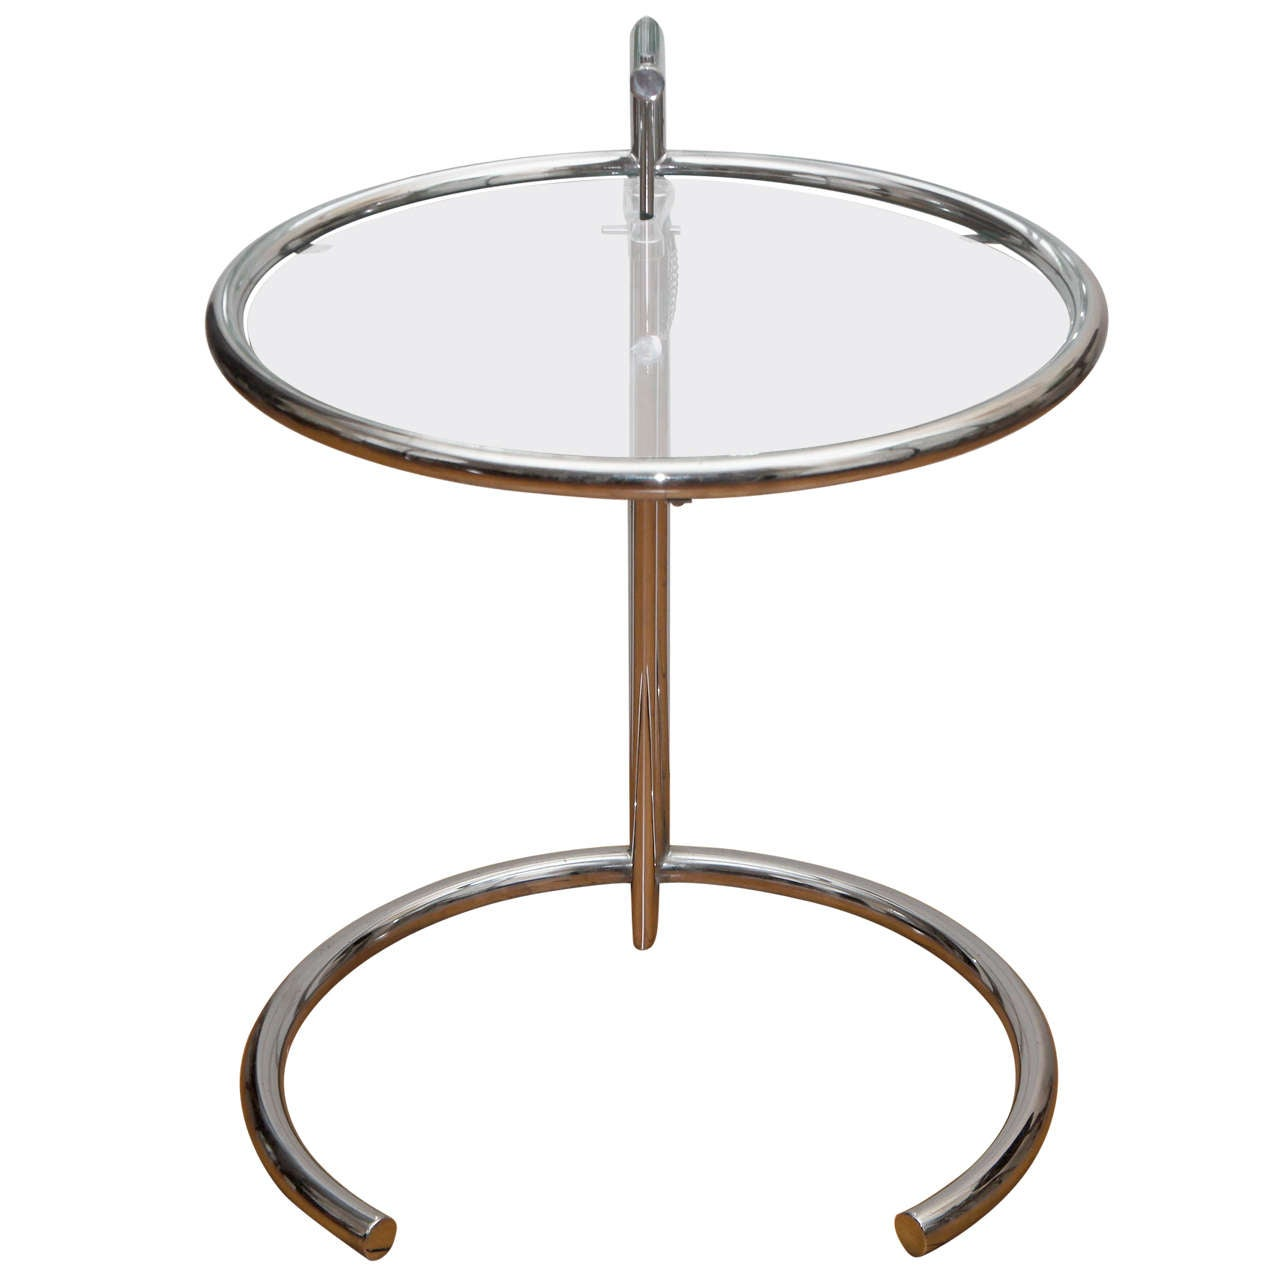 Eileen Gray Chrome And Glass Round Table For Sale At Stdibs - Eileen gray end table